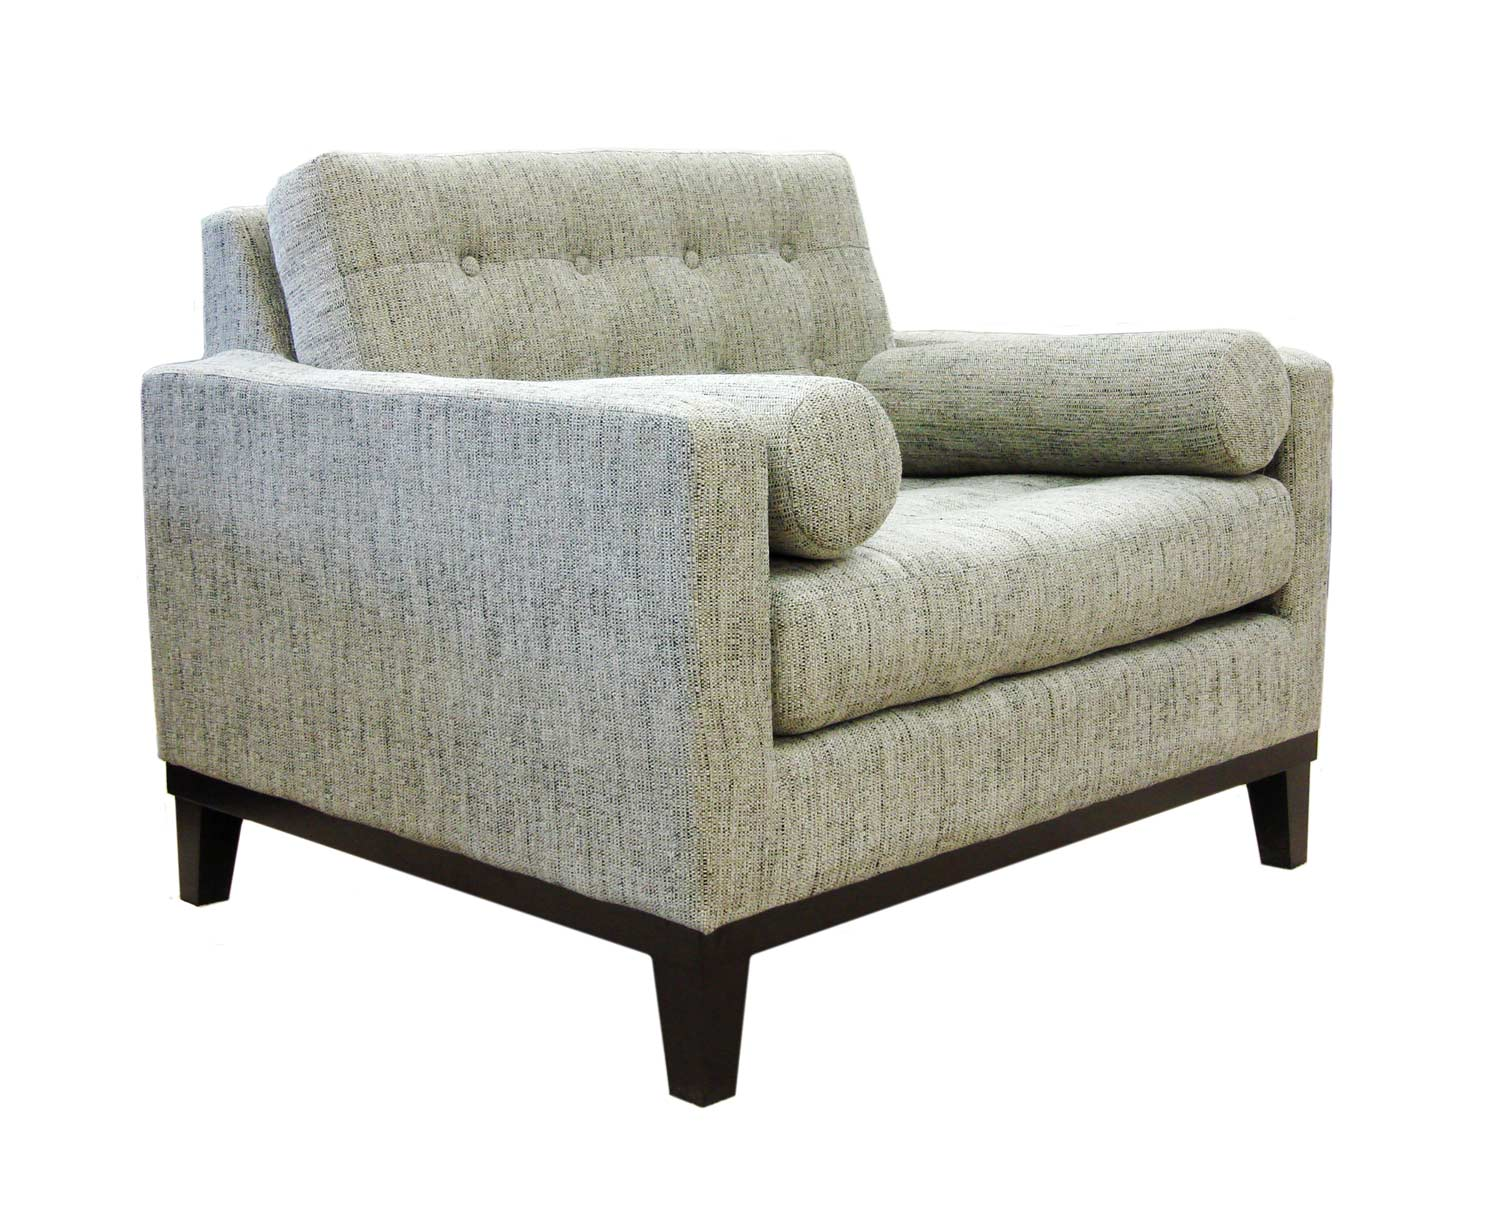 Armen Living Centennial Chair - Ash Fabric